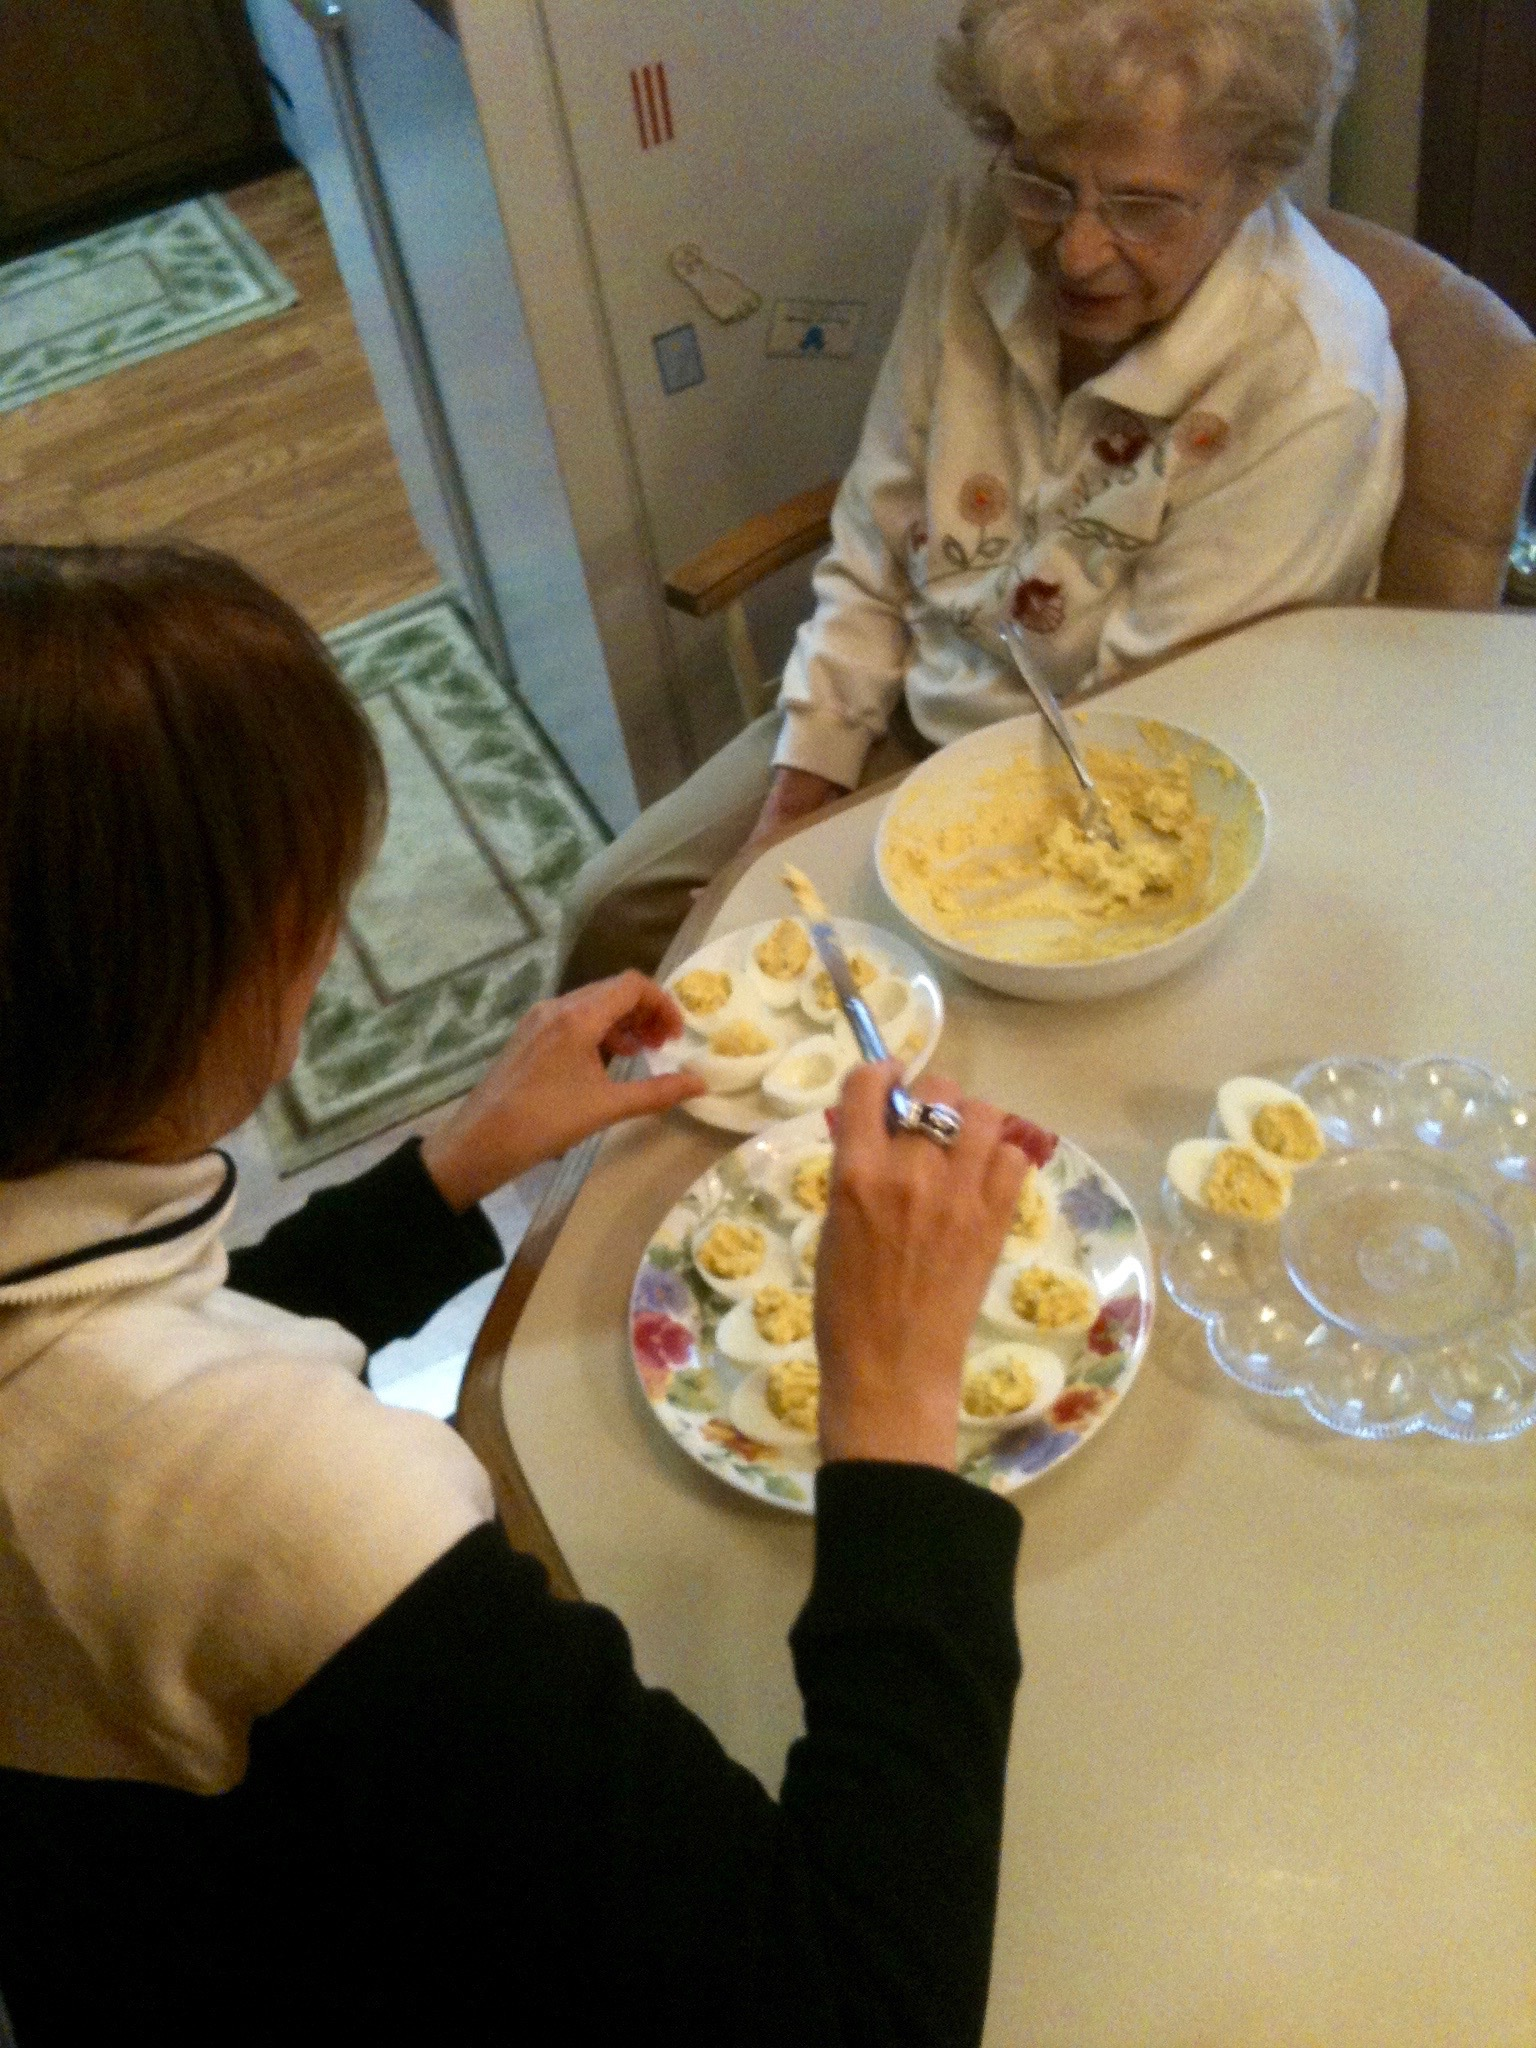 Me and Mommie making deviled eggs.